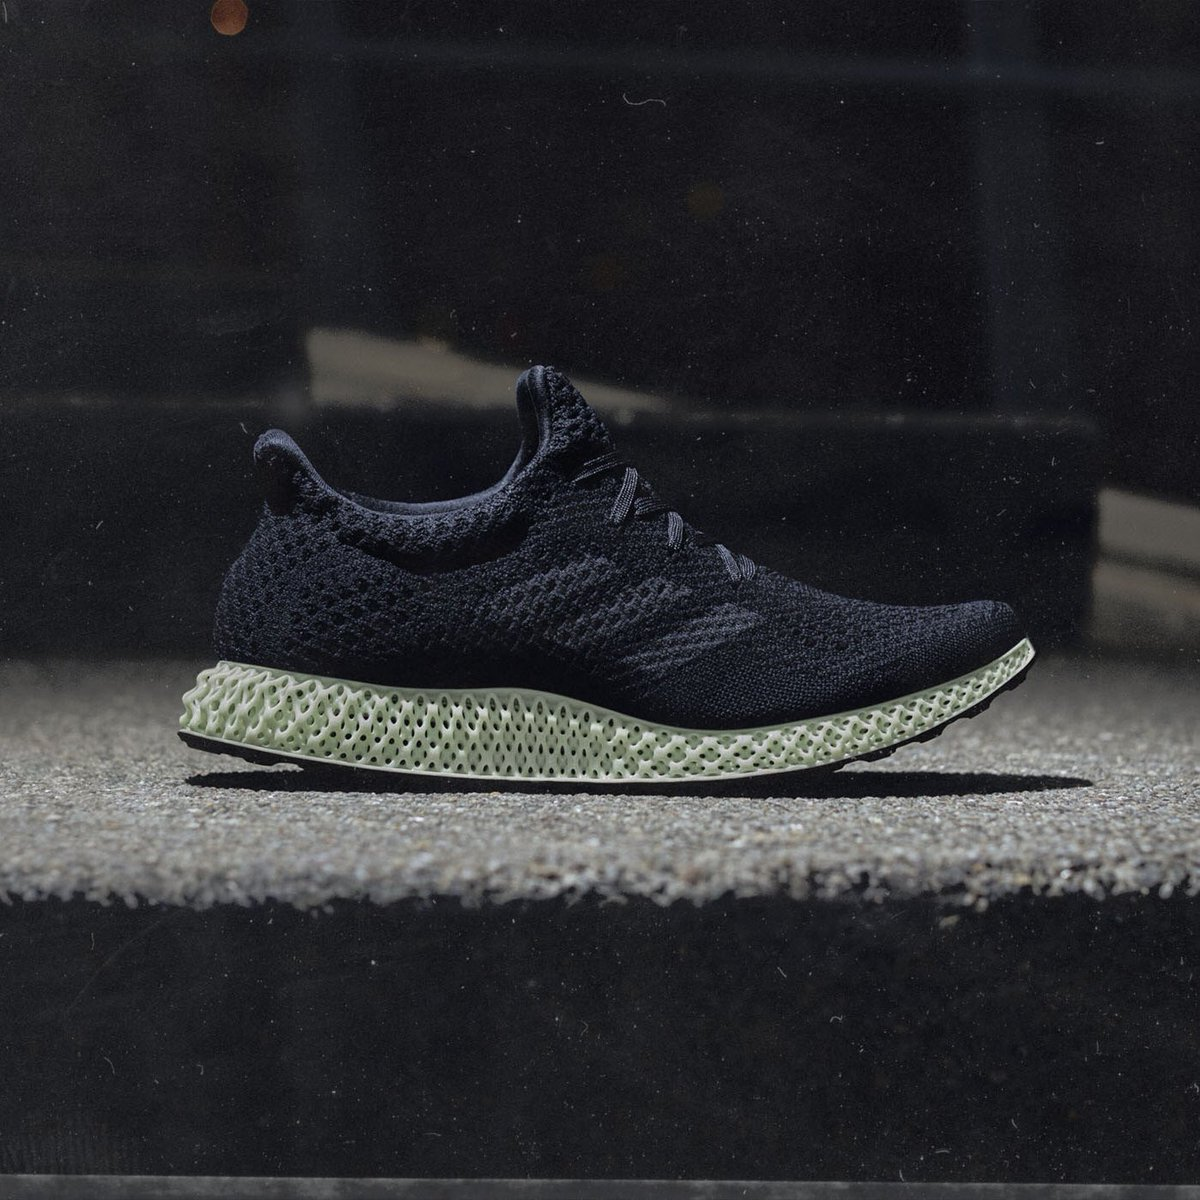 buy online a68de ccd2b The future of footwear. adidas NYC 5th Ave. will launch the FUTURECRAFT 4D  on February 10. Get the adidas App for a chance to reserve a pair.